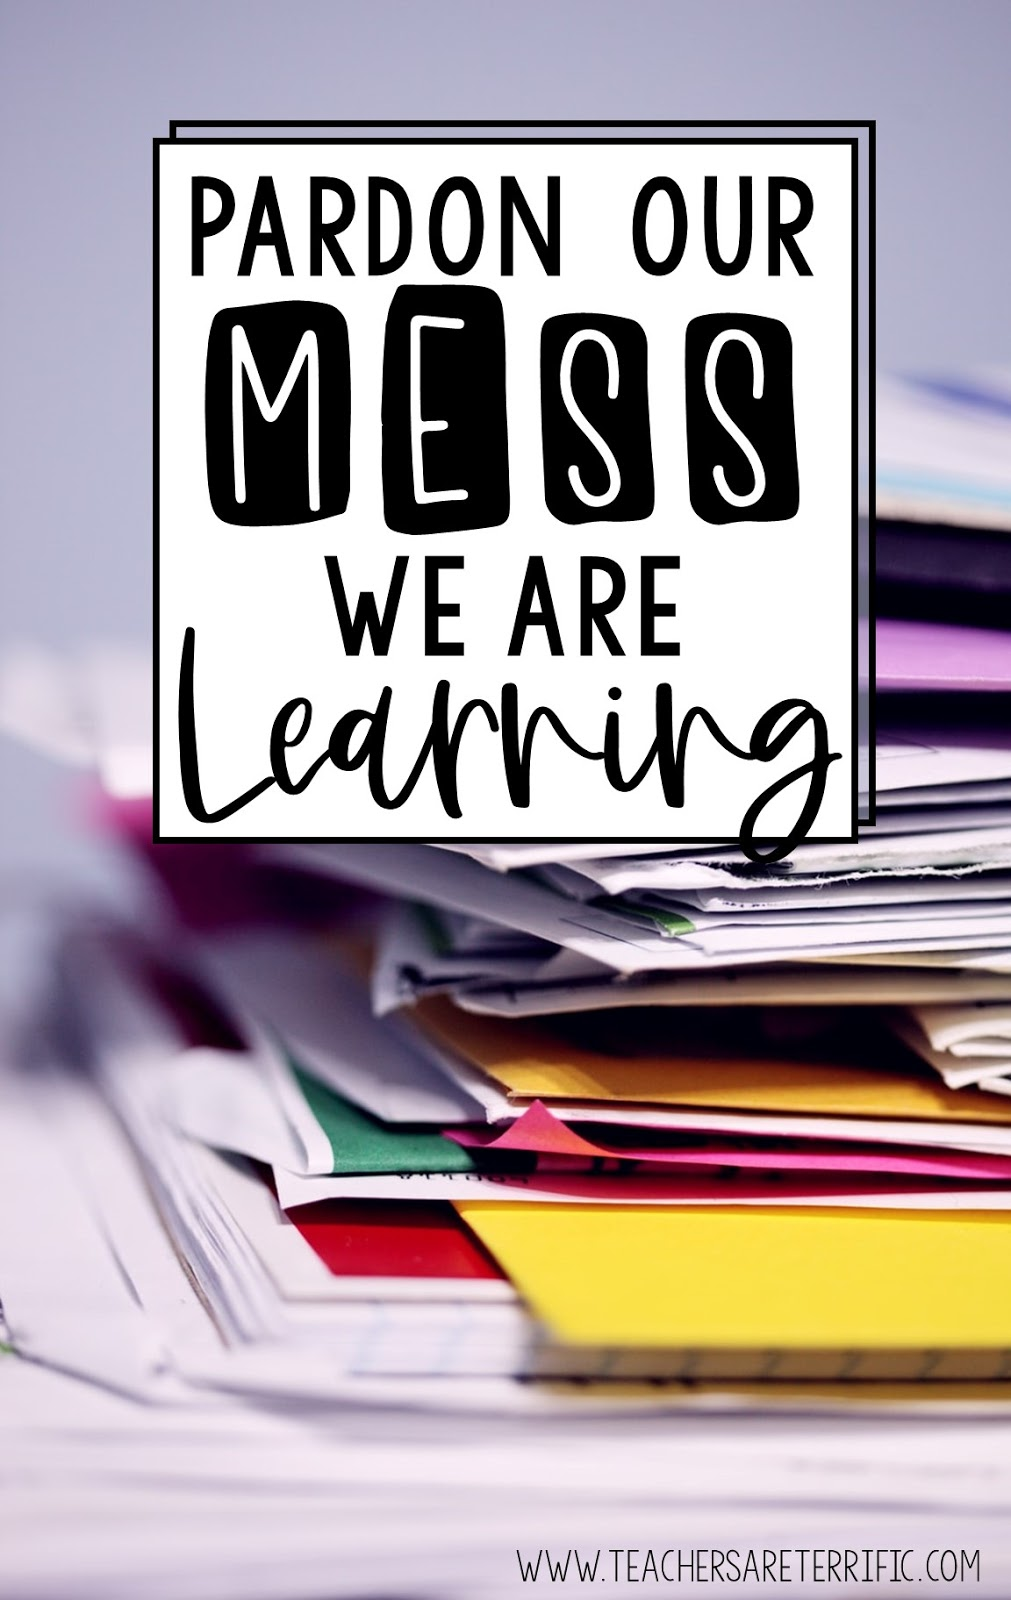 Ways to avoid those messes in your STEM Lab- check this blog post full of tips!